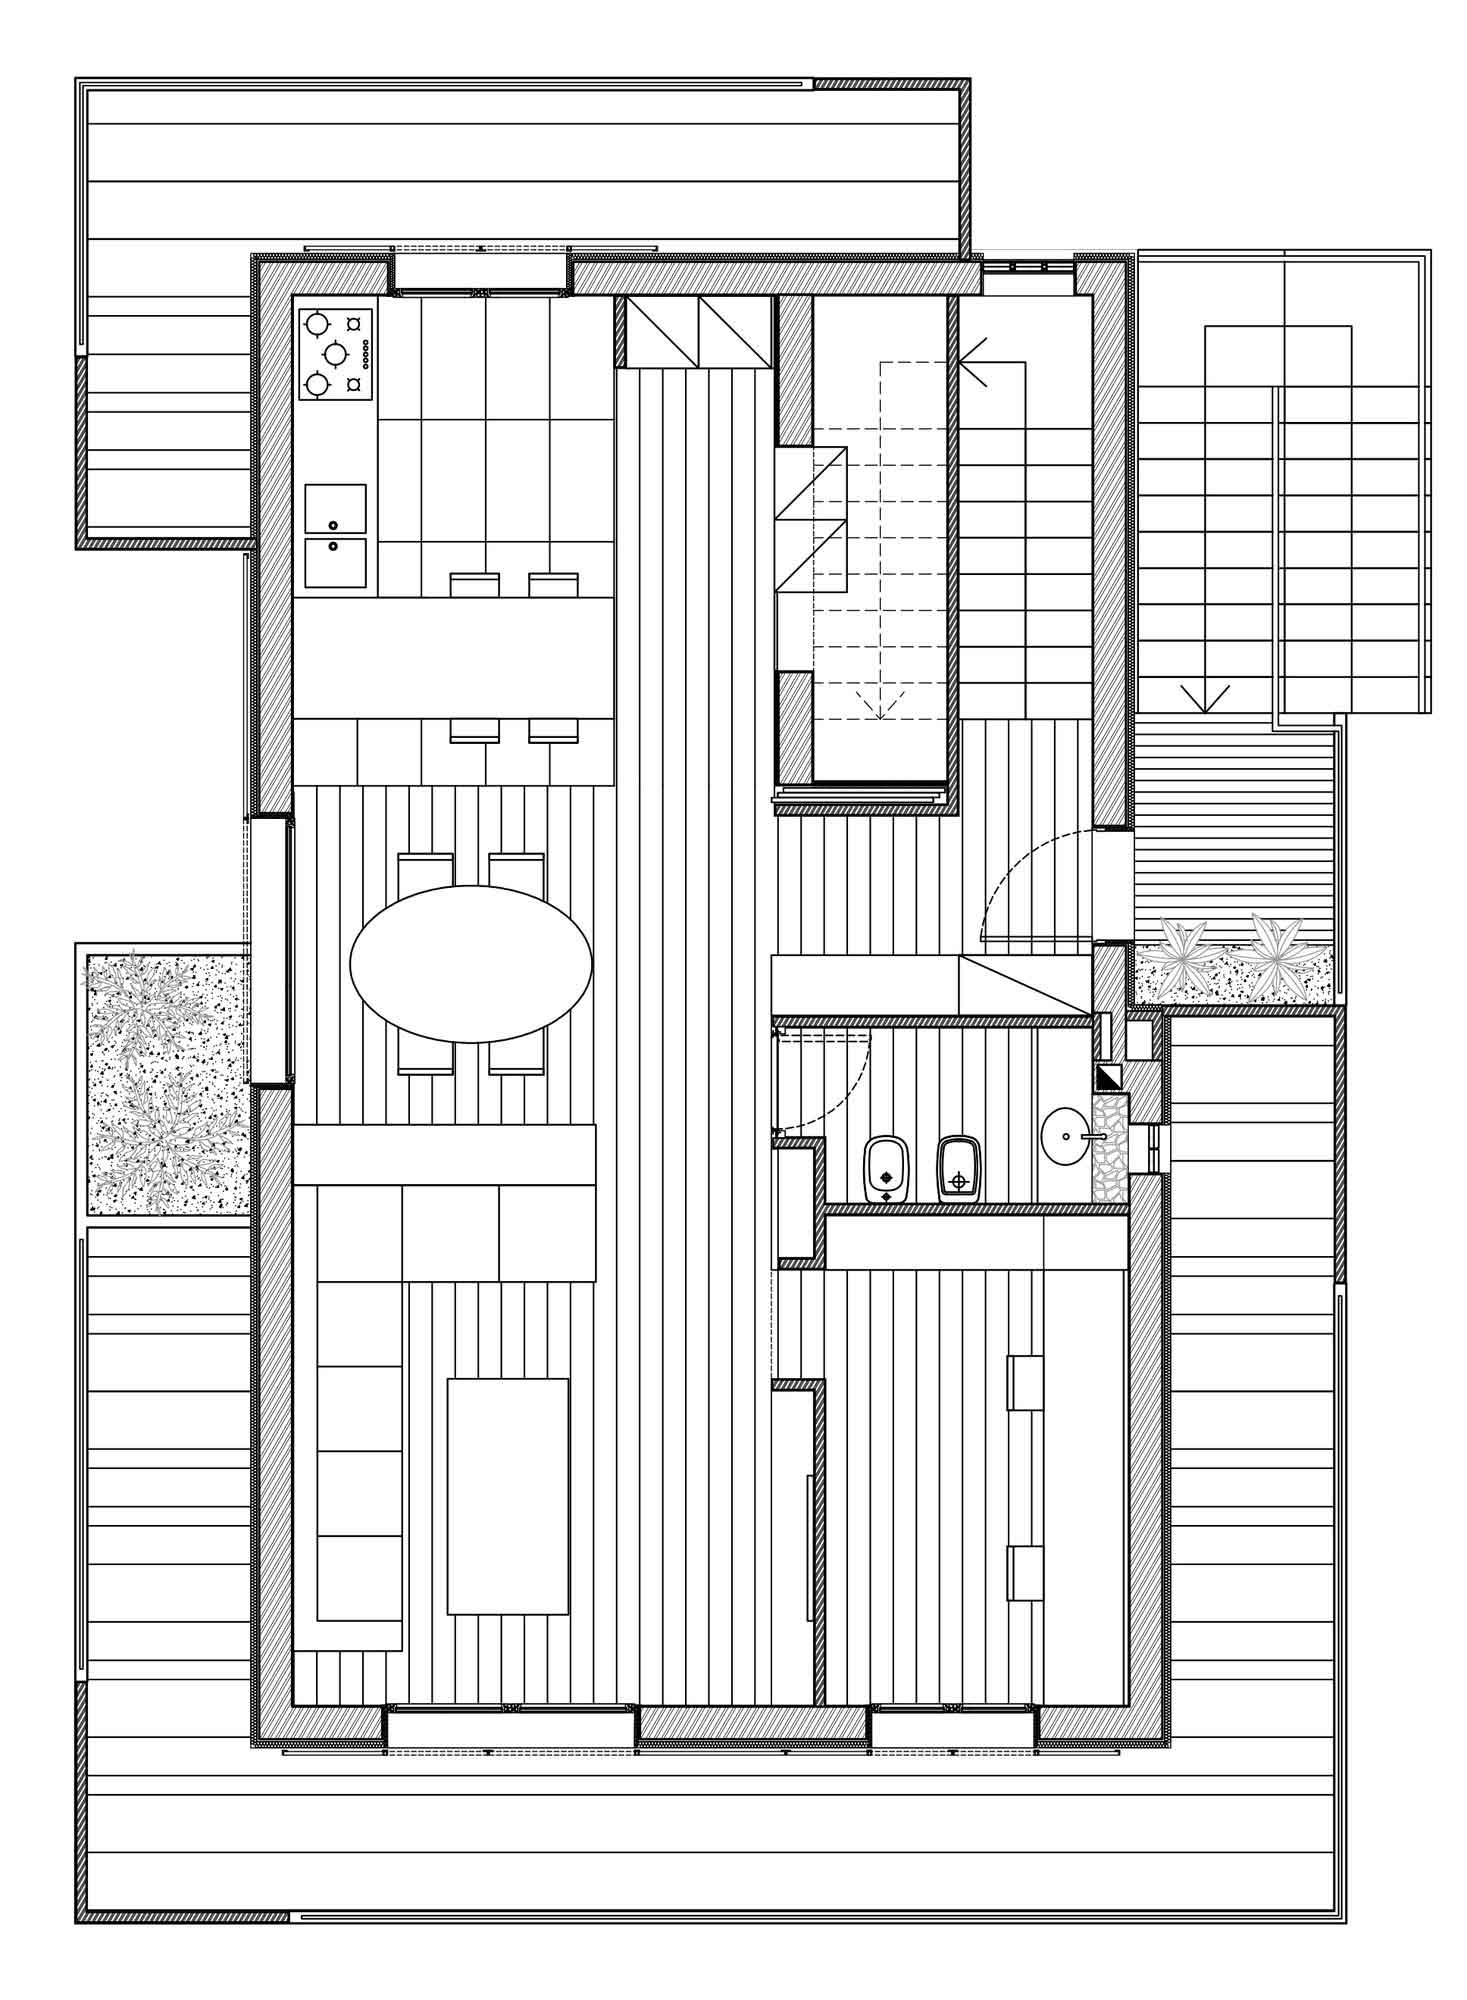 Ground Floor Plan, RGR House in Rimini, Italy by archiNOW!